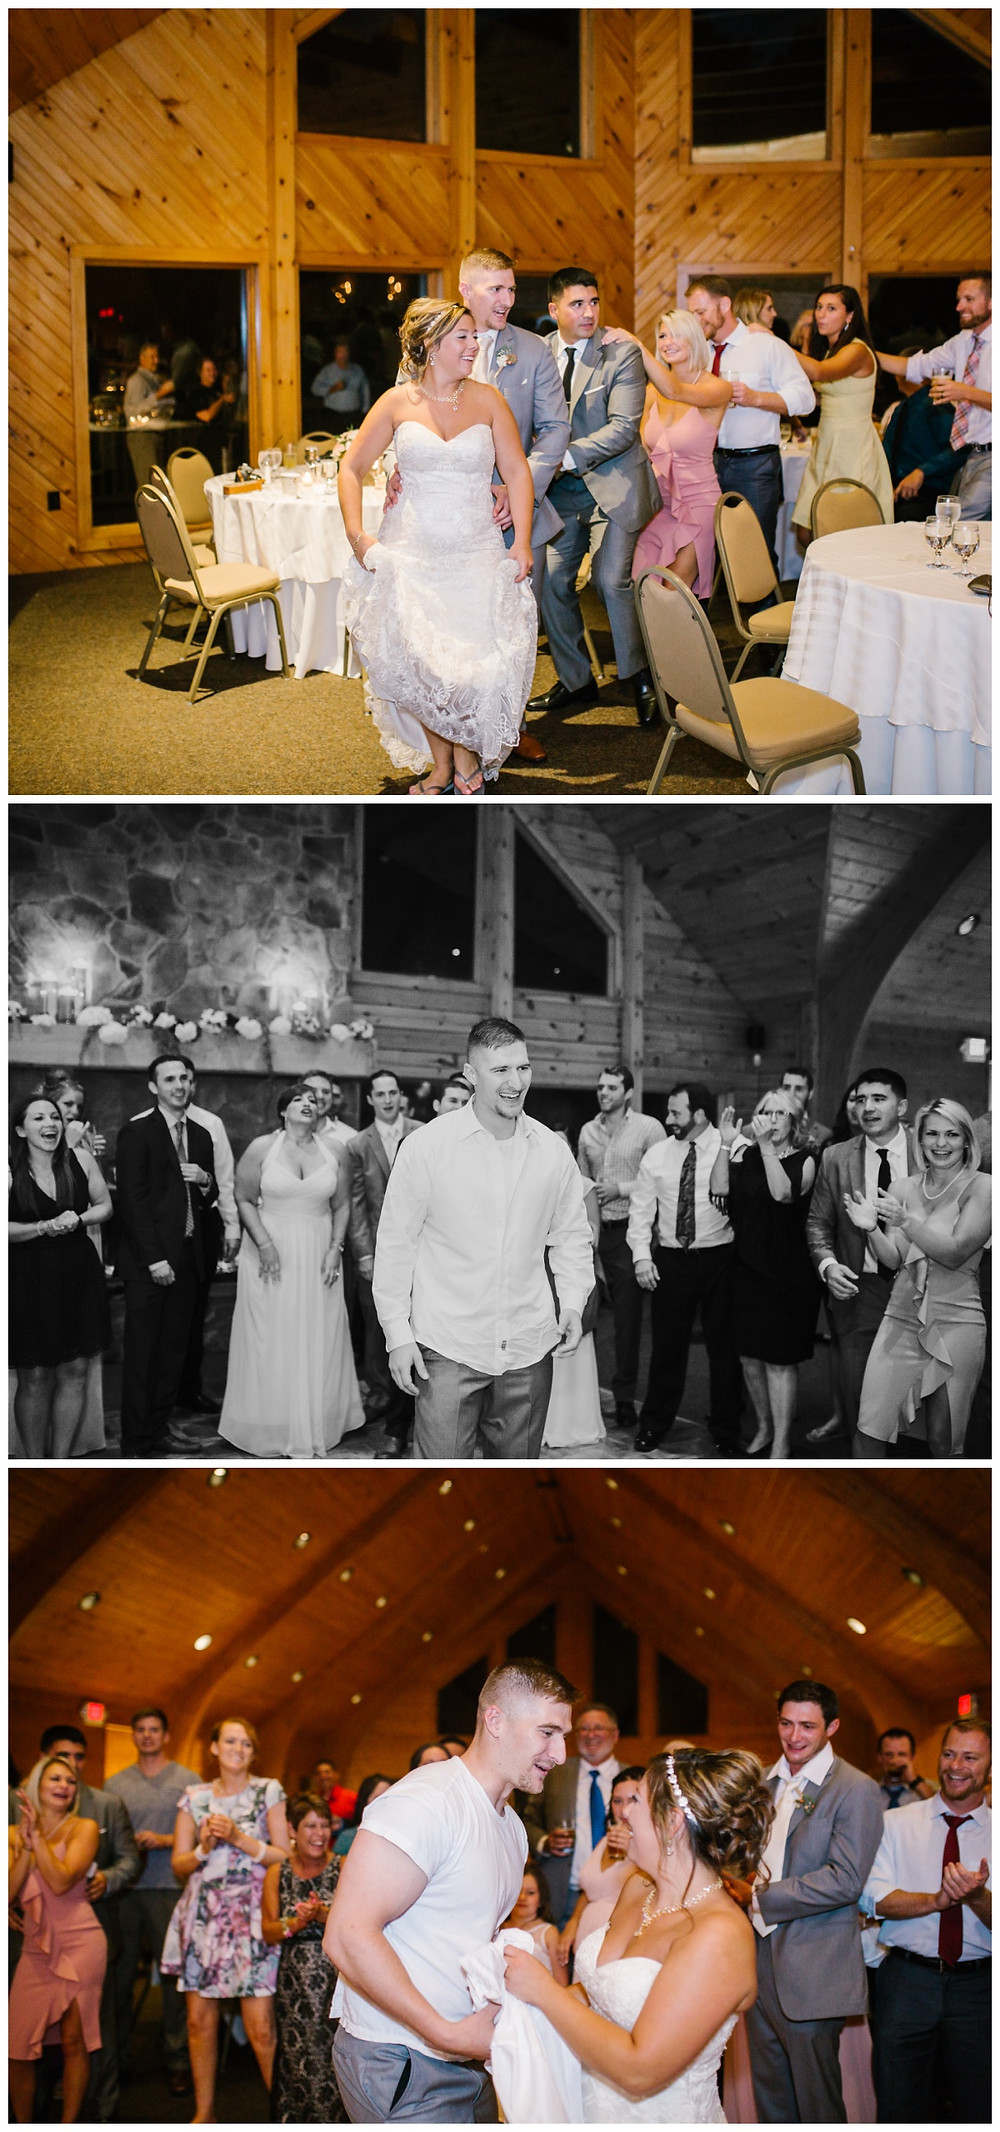 Dancing - Liberty Mountain Boulder Ridge Lodge Wedding - Maryland Wedding Photographer - Katherine Elizabeth Photography